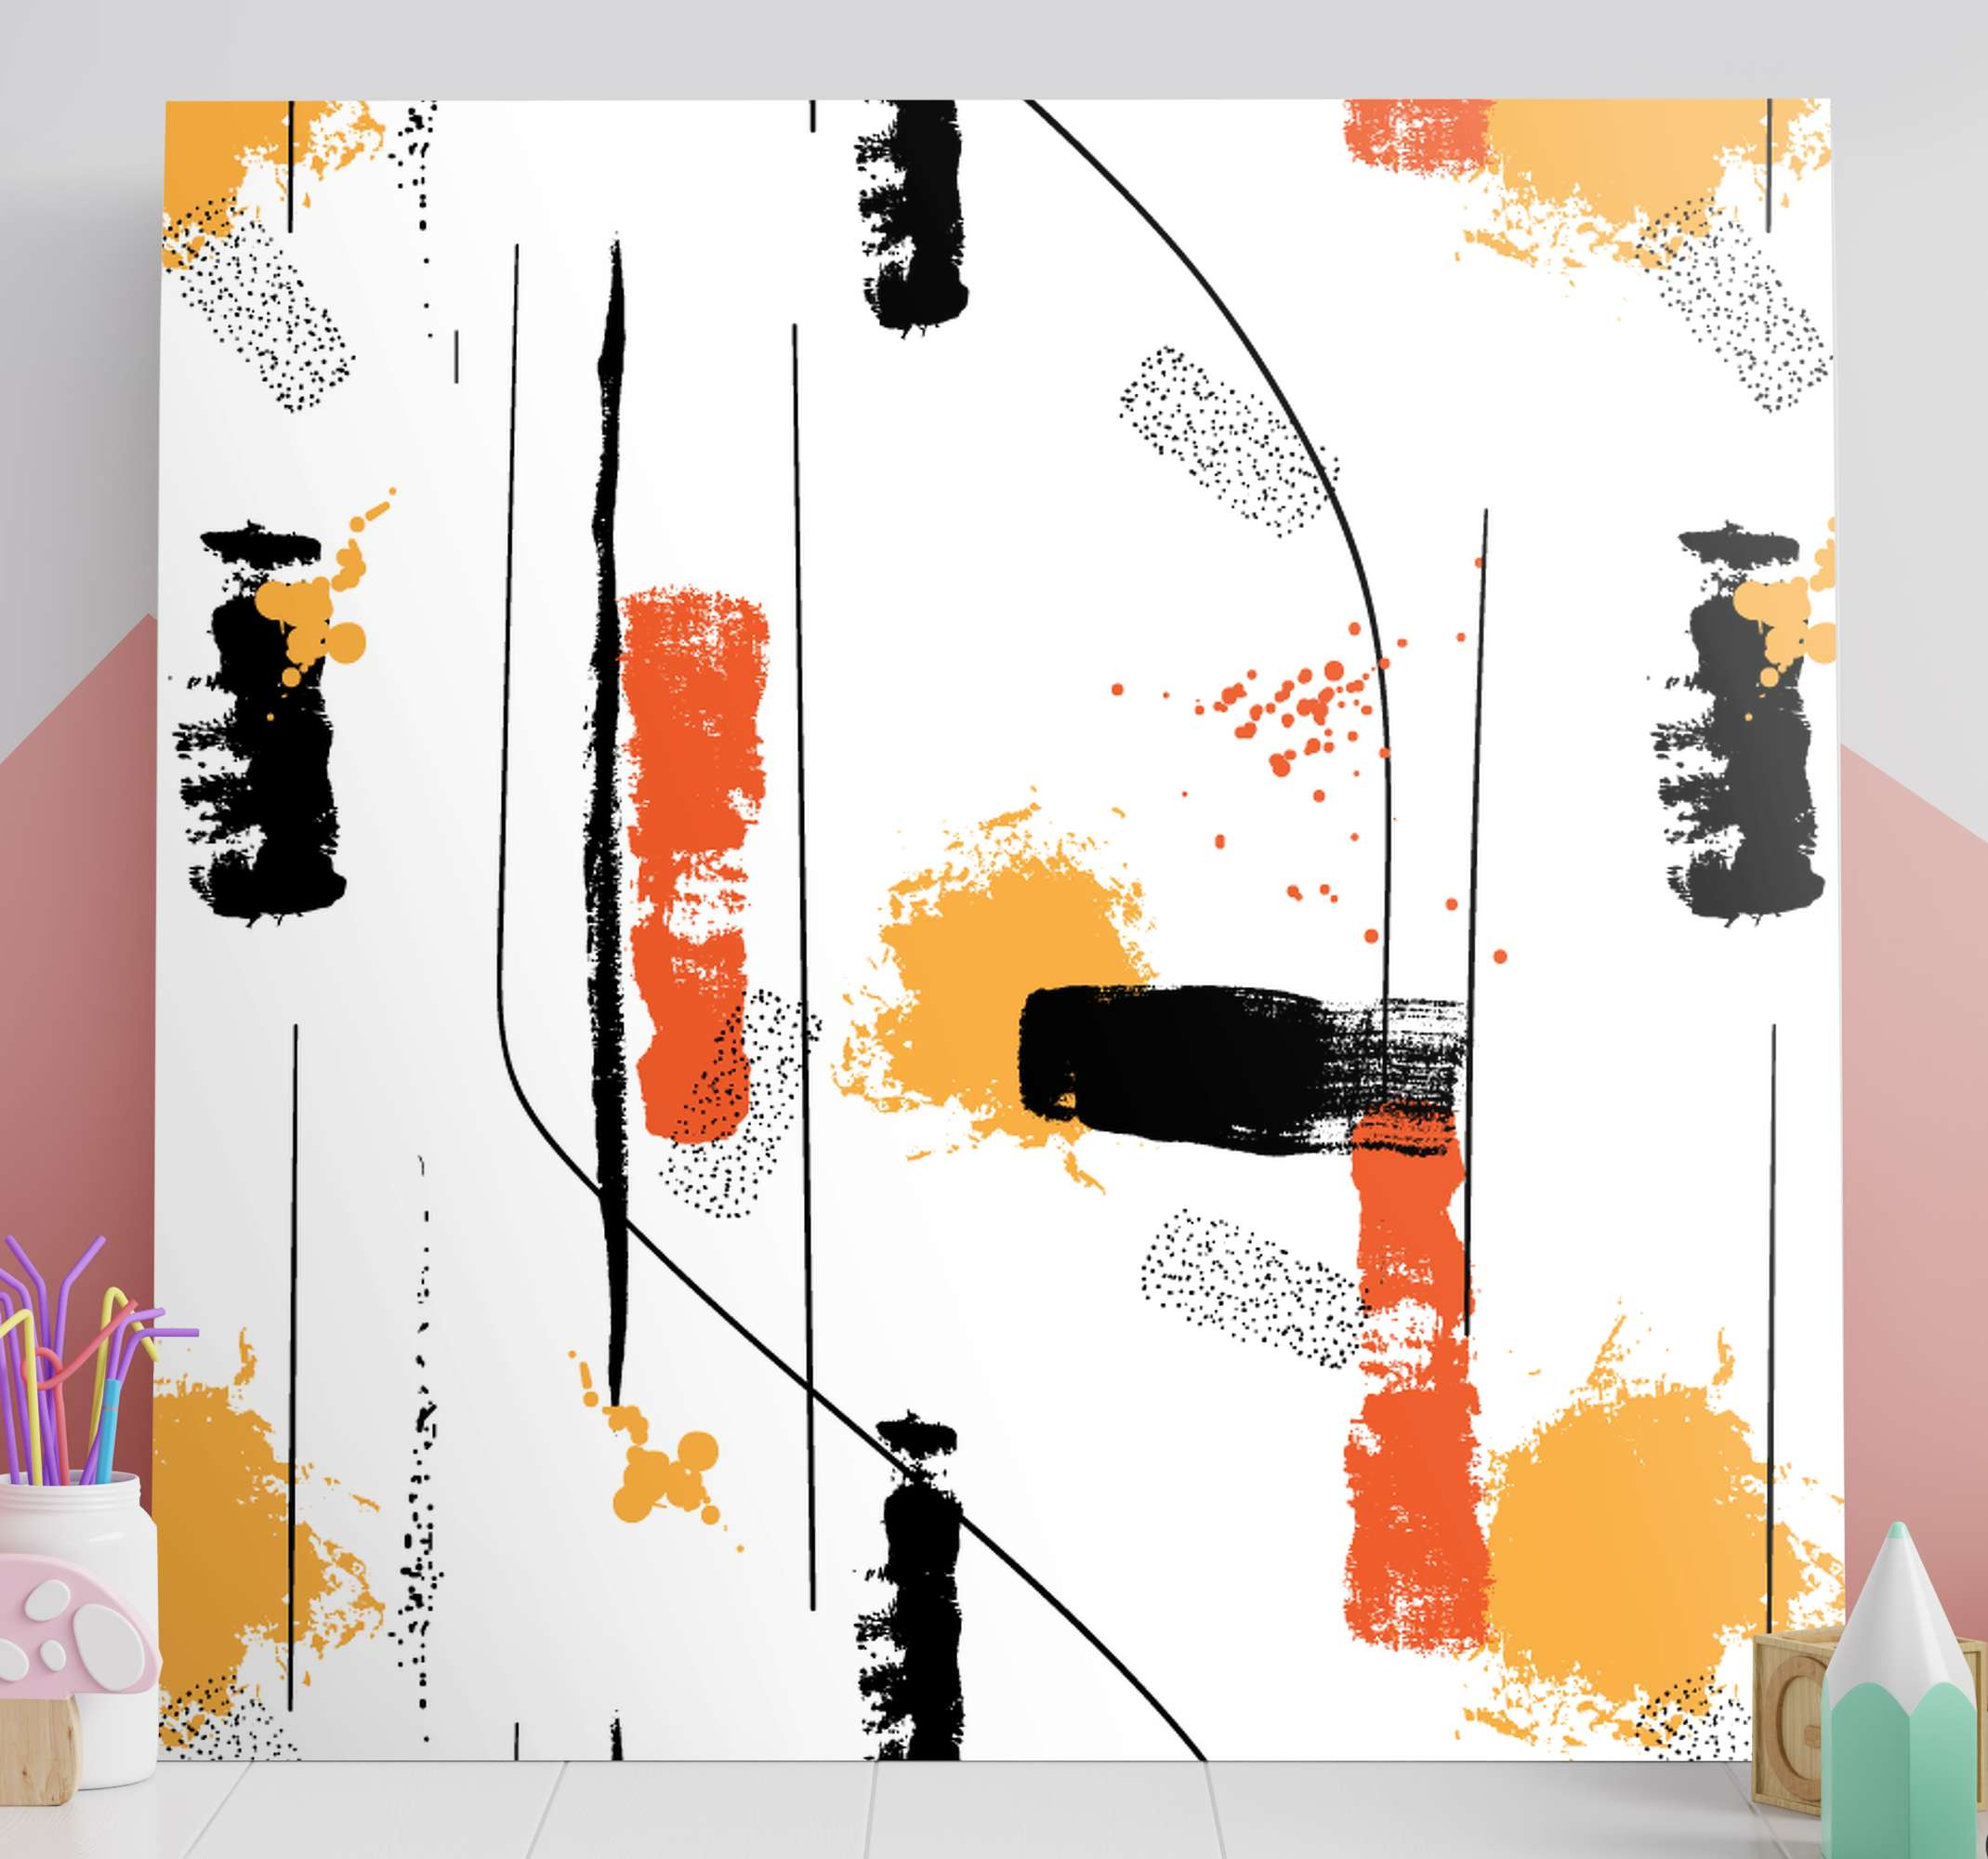 TenStickers. Lineal abstract art canvas print. White background and lineal abstract art canvas print to decorate any space in your house or office. Worldwide delivery to your front door!